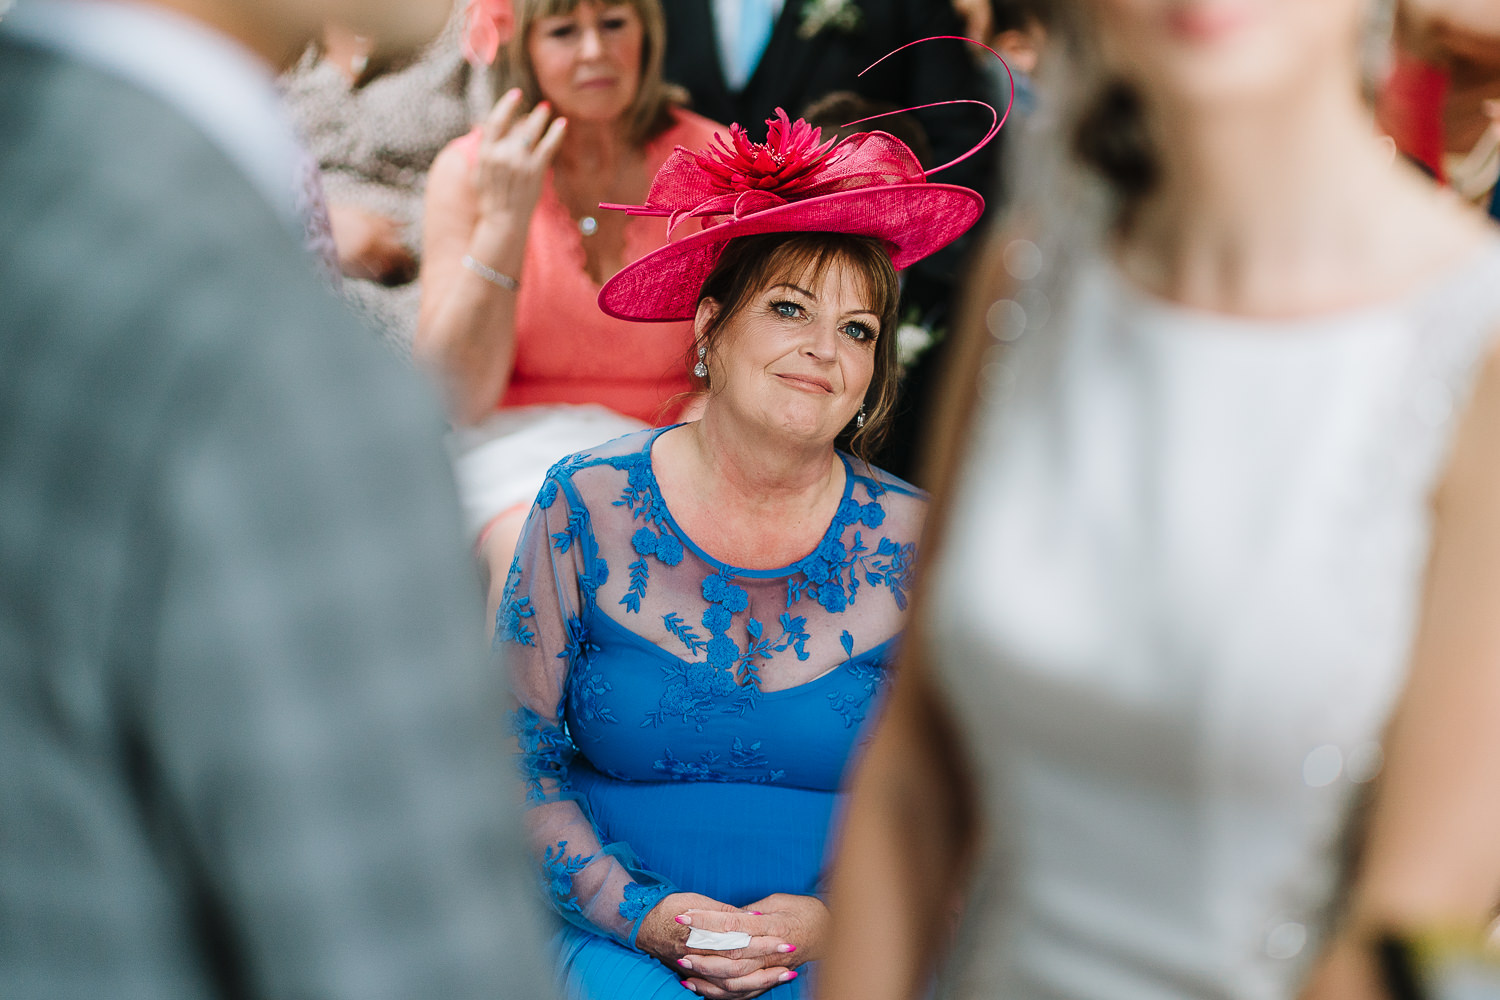 Mum looking on at the couple